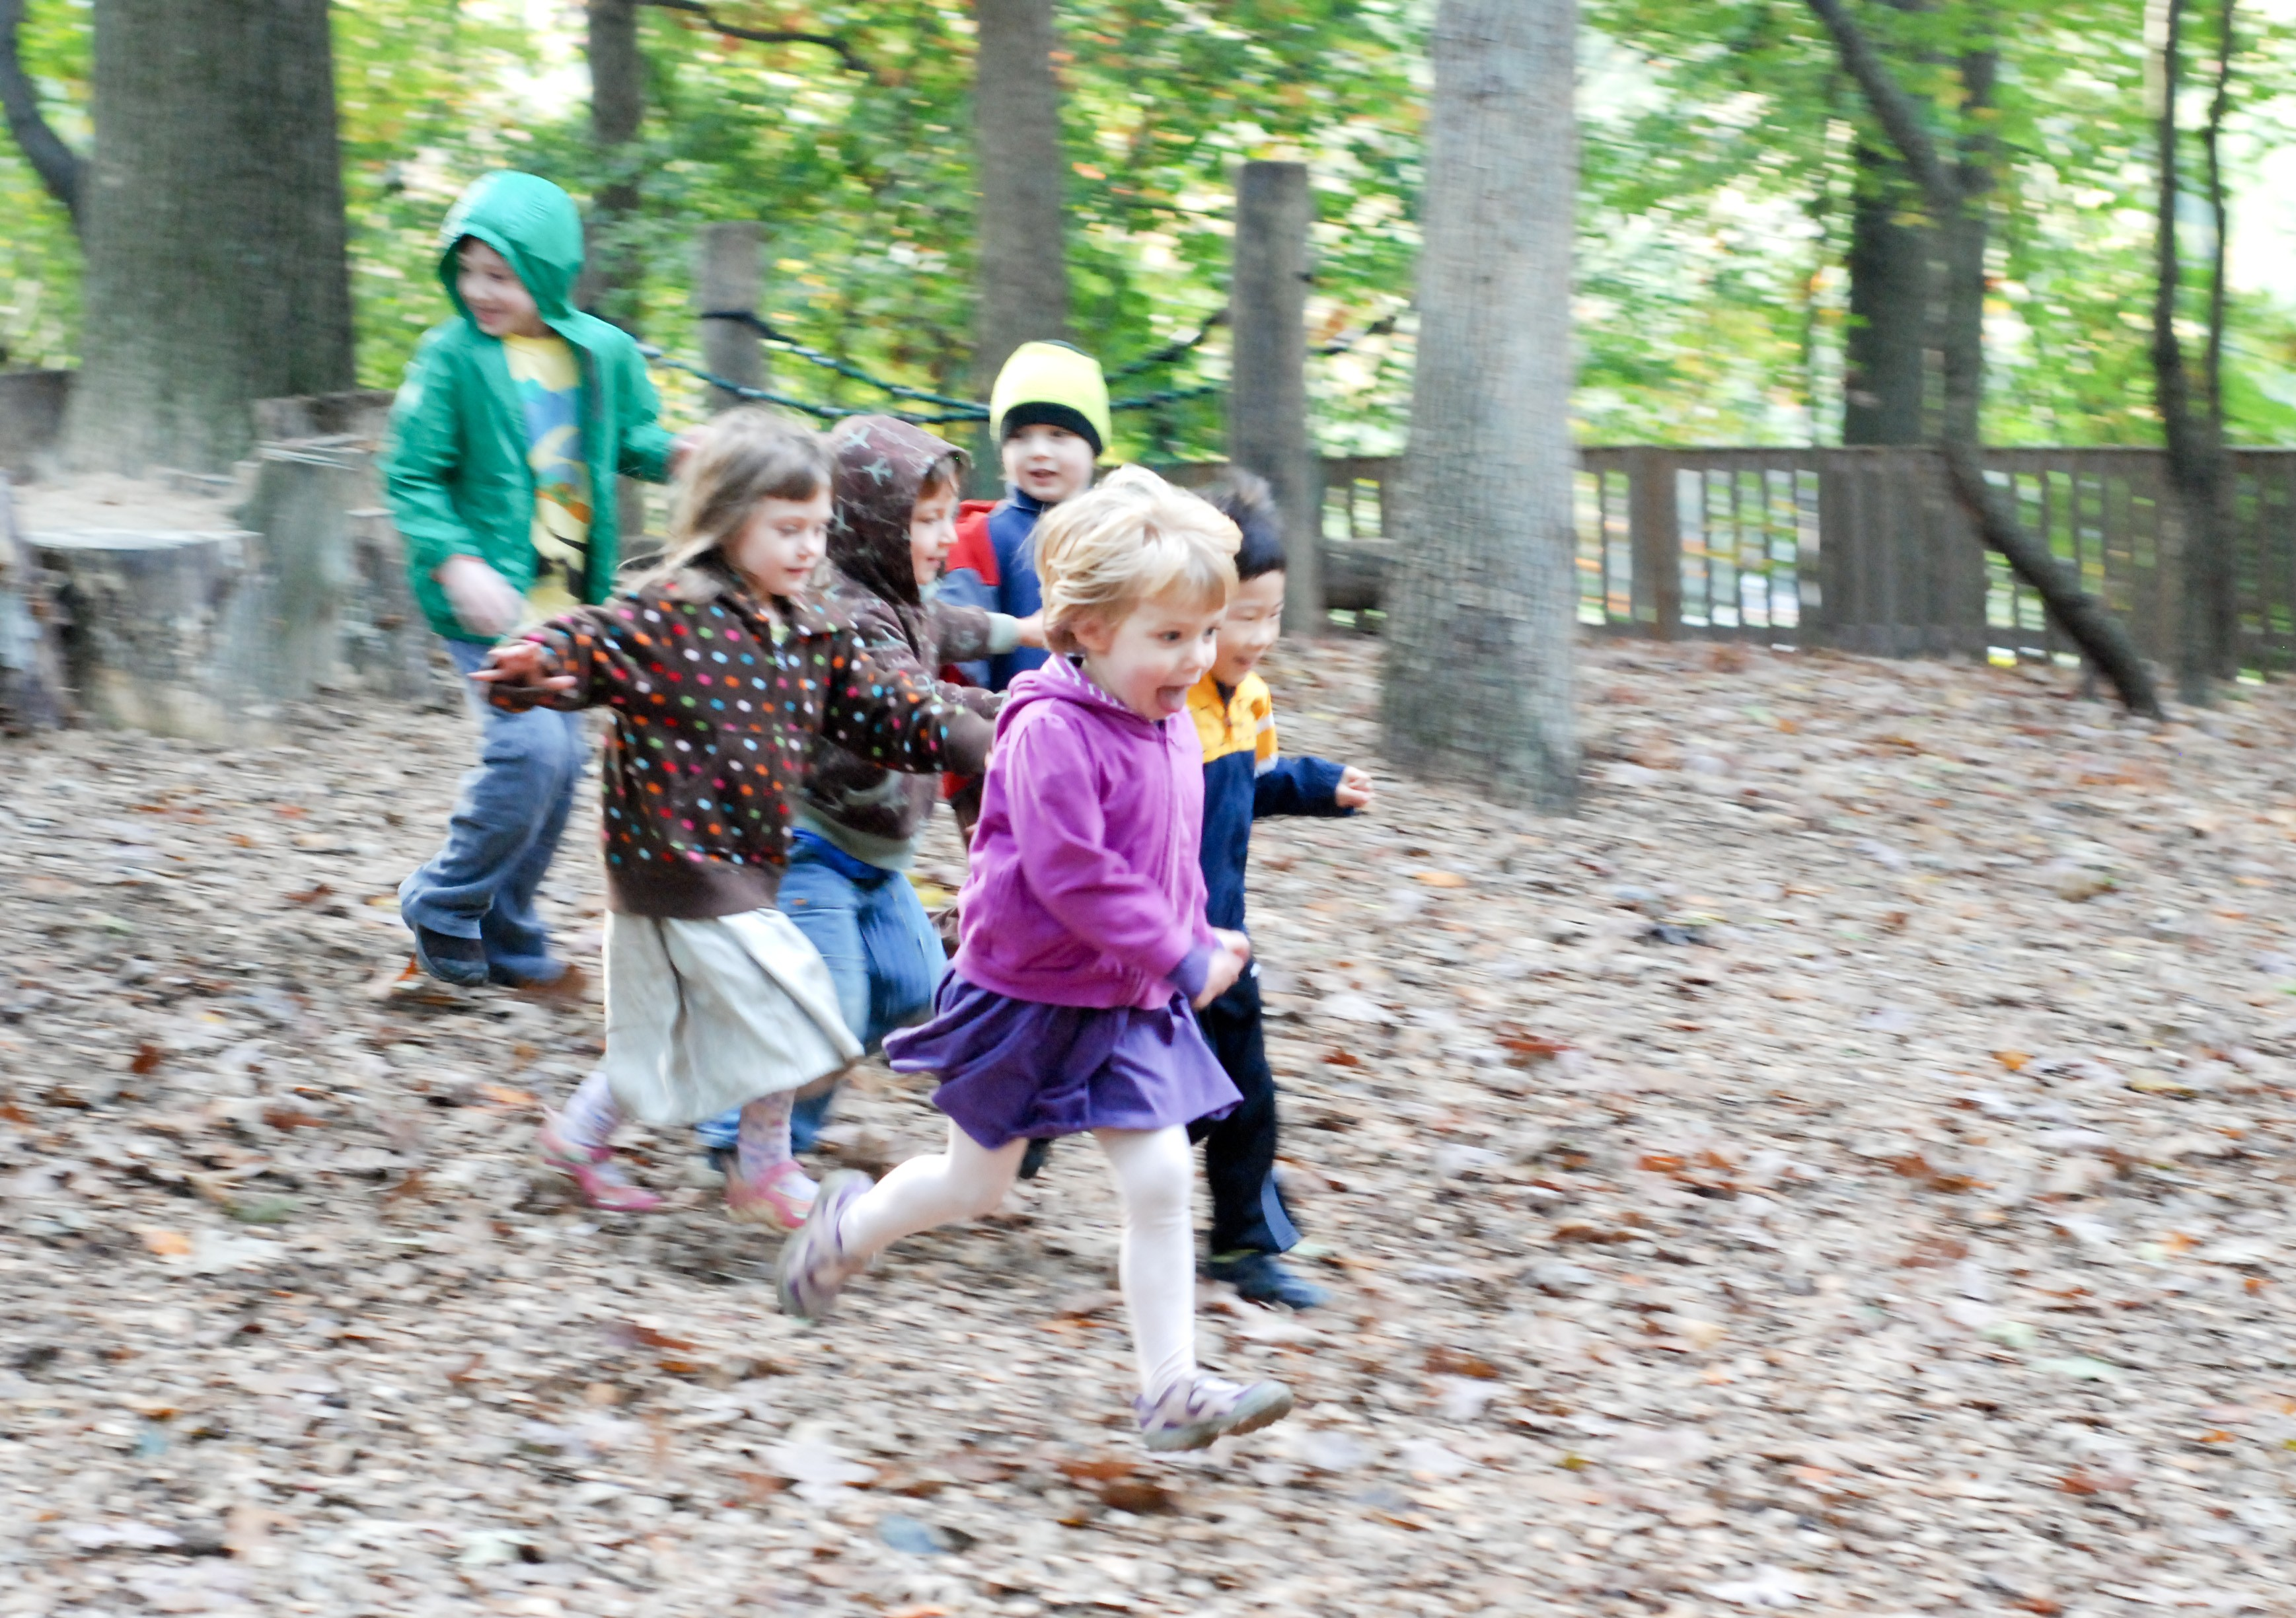 Acorn Hill in Silver Spring offers kids plenty of free play outdoors